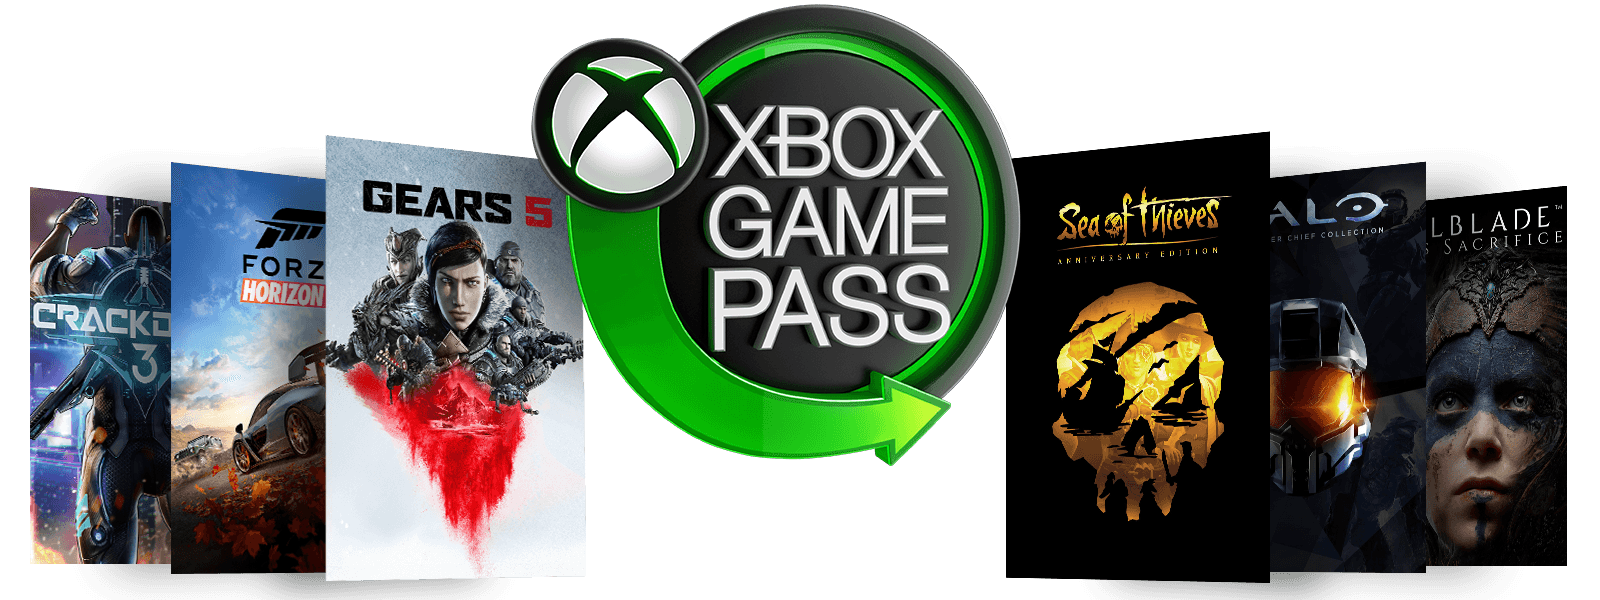 Logo Xbox Game Pass en néon entouré de graphismes issus de Forza Horizon 4, PlayerUnknown Battleground, Crackdown 3, Sea of Thieves Édition Anniversaire, Halo et Hellblade: Senua's Sacrifice